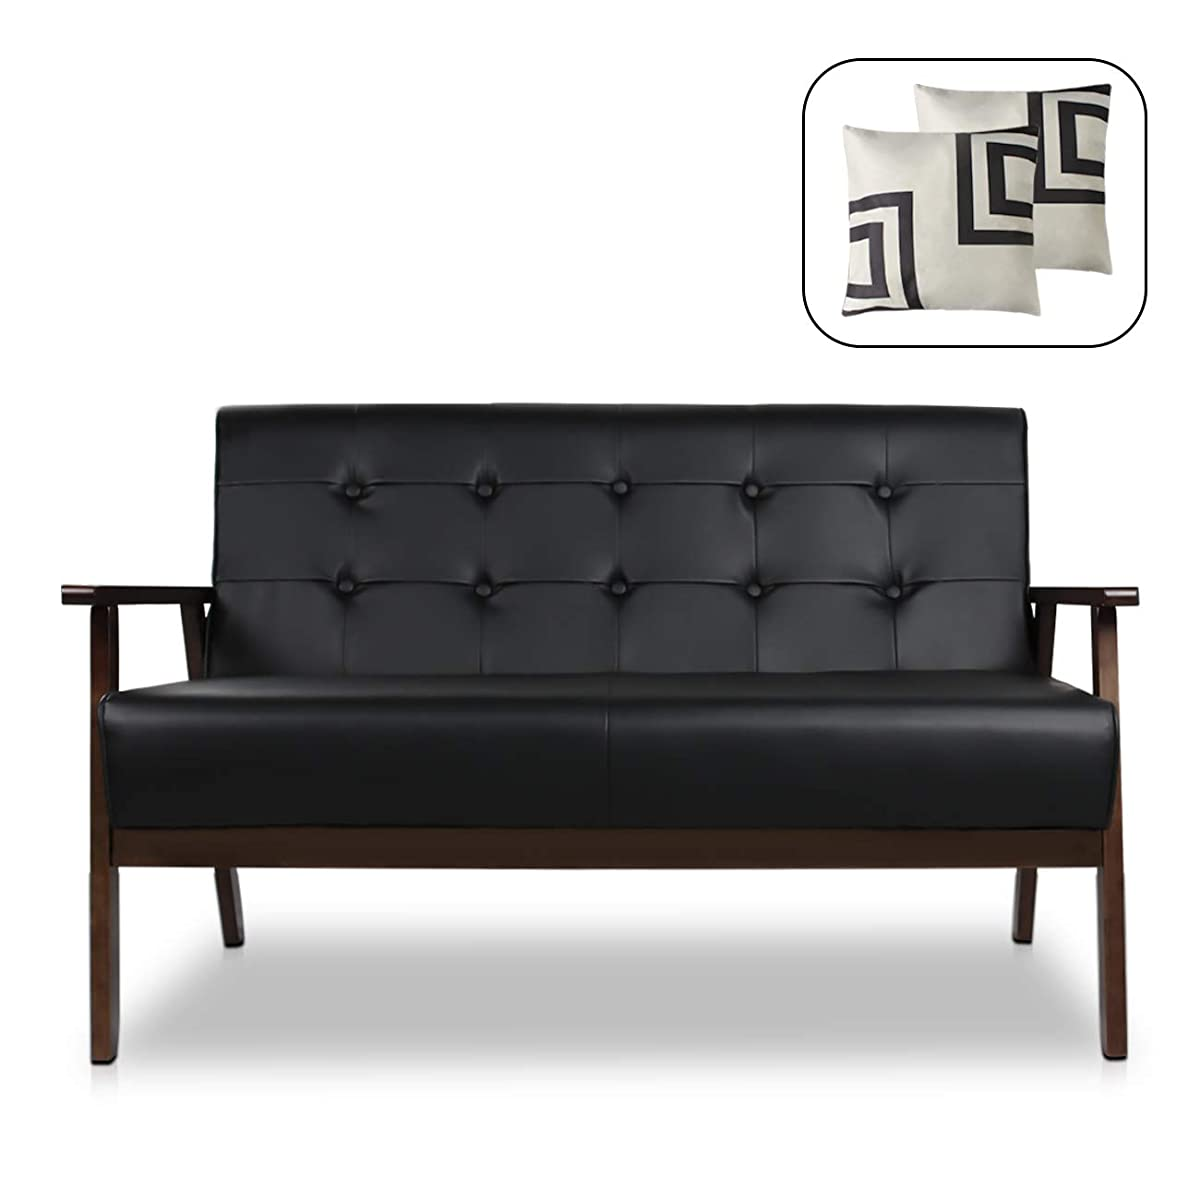 """Mid-Century Modern Solid Loveseat Sofa Bed Upholstered Fabric Couch 2-Seat Wood Armchair Living Room/Outdoor Lounge Chair,50""""W (Leather)"""